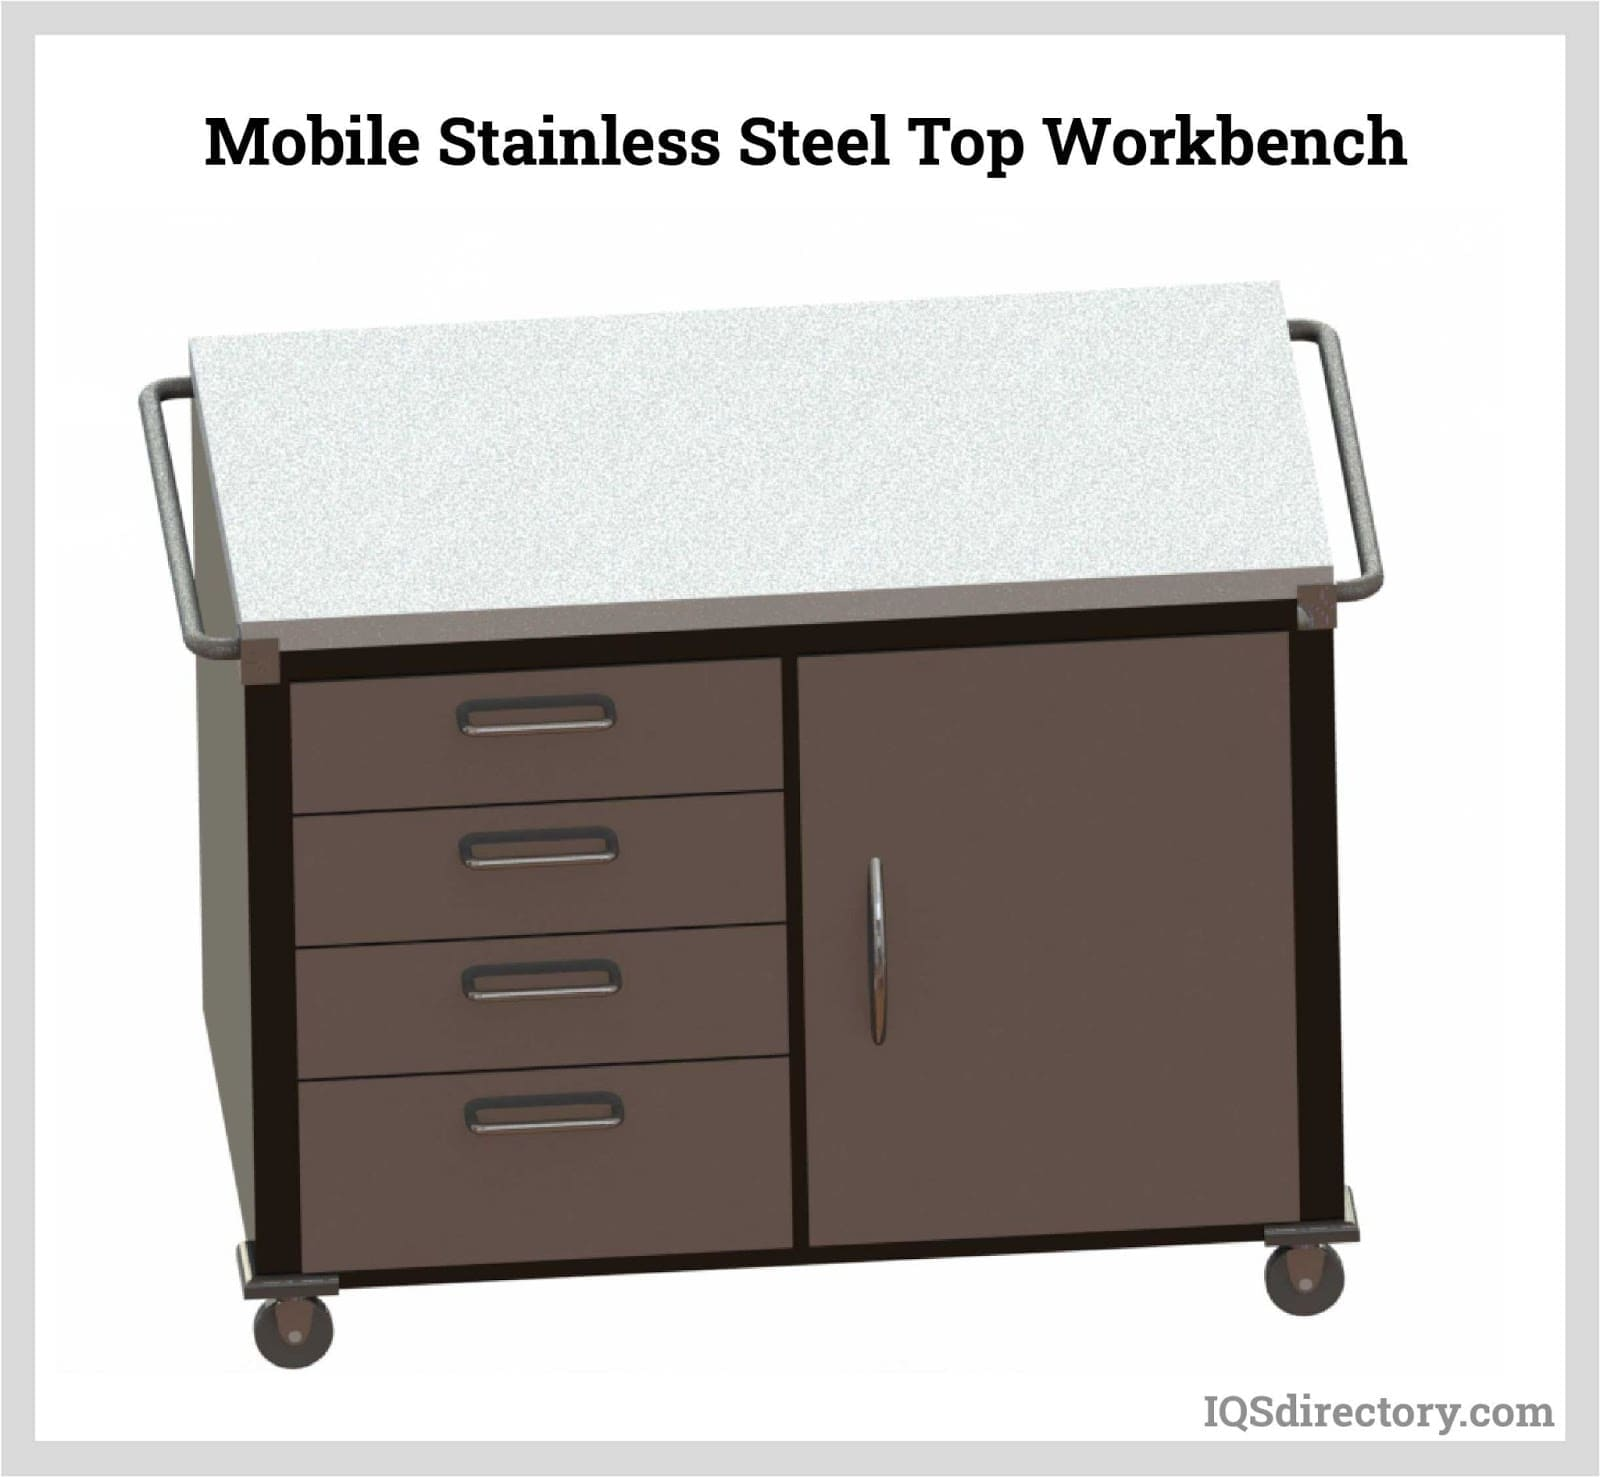 Mobile Stainless Steel Top Workbench